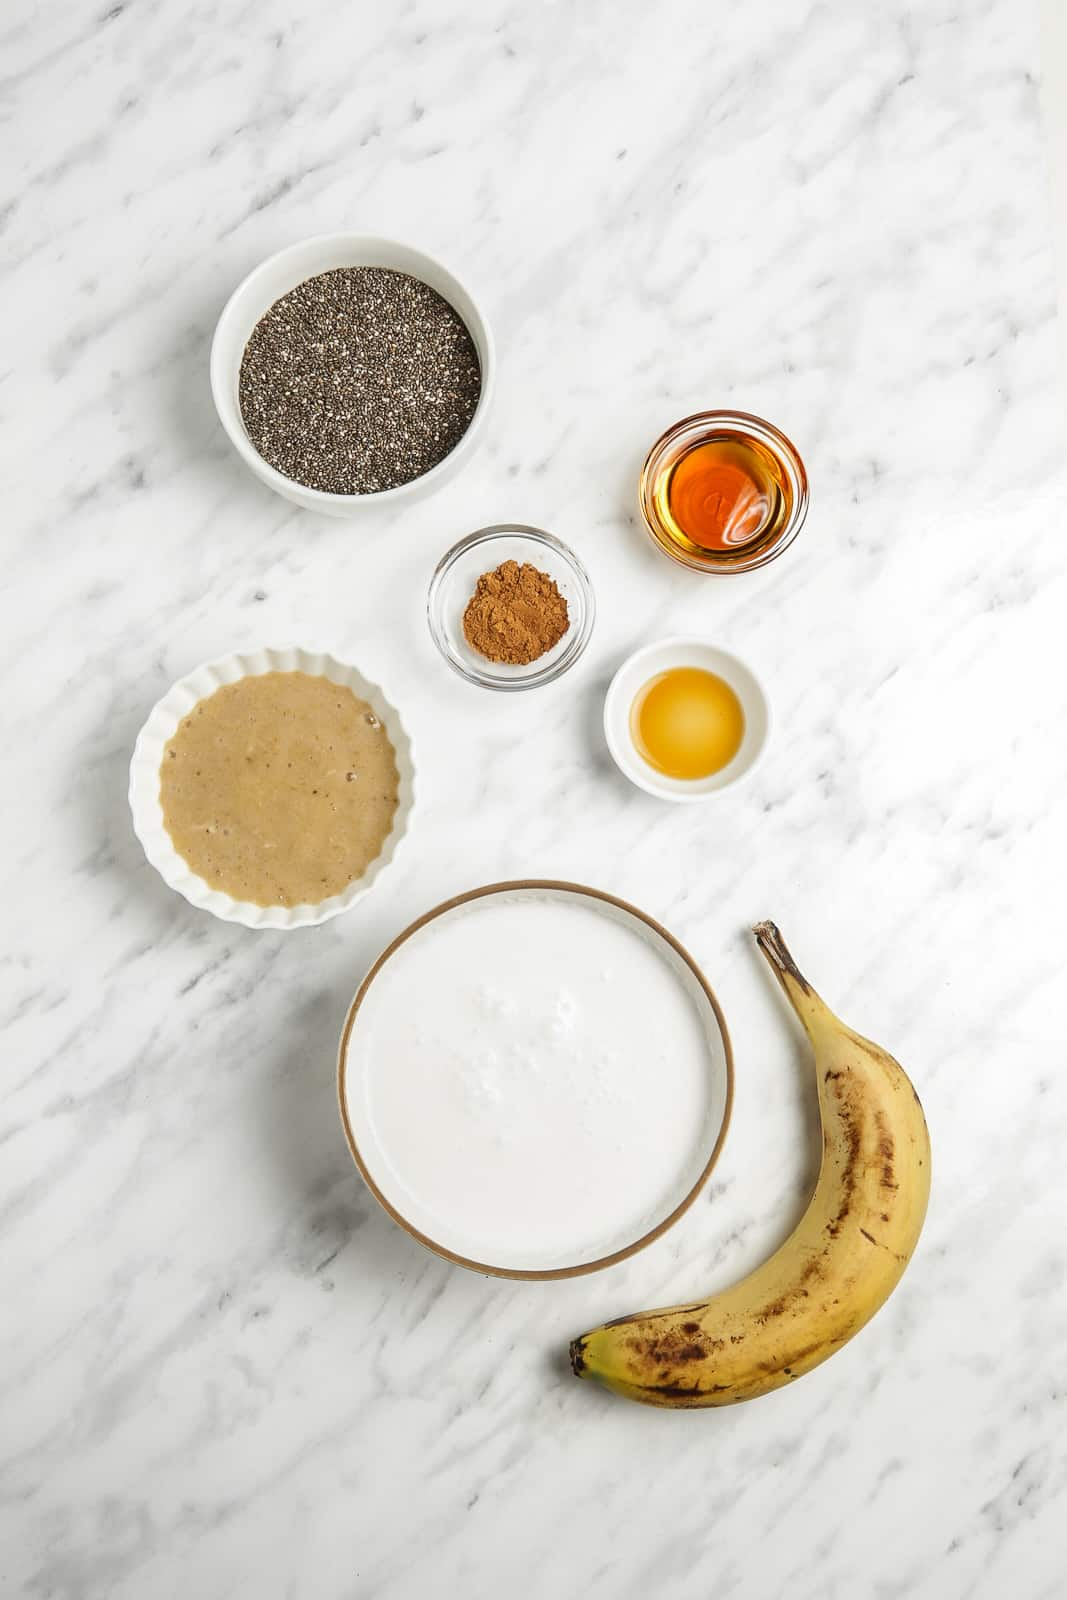 Bowls of chia seeds, maple syrup, coconut milk, vanilla syrup, cinnamon,  and mashed banana with a fresh banana